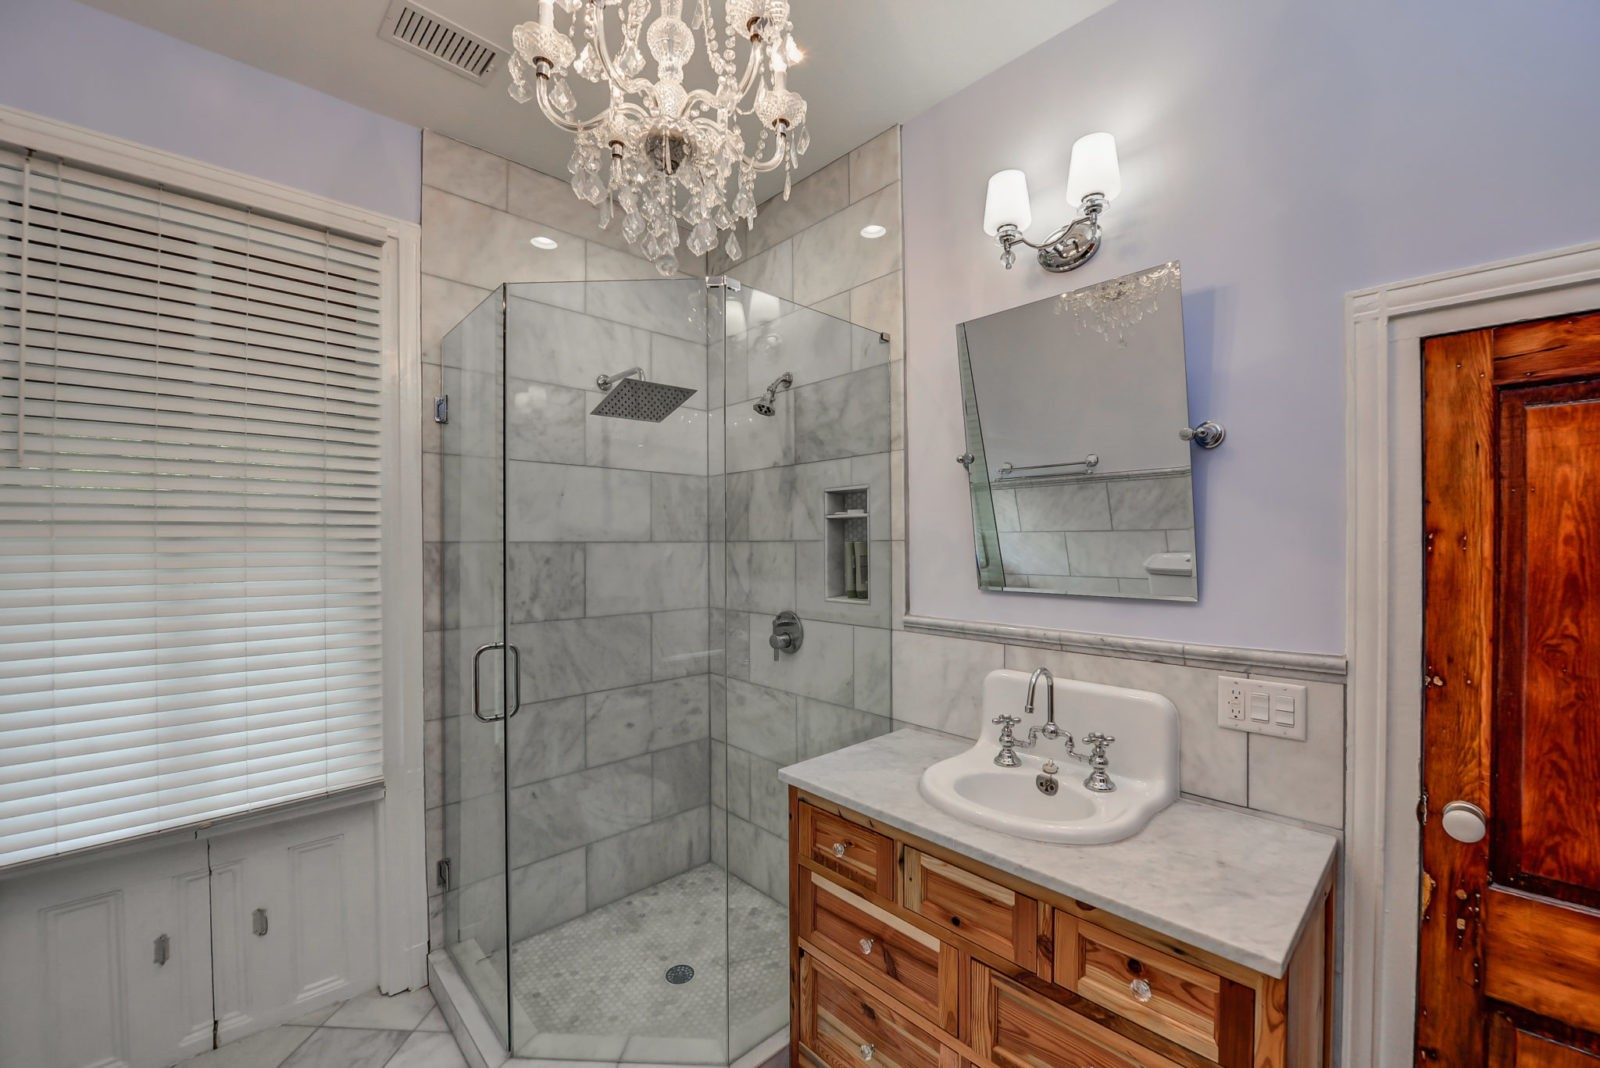 Post Civil War Custom Bathroom Remodel with marble floors, glass shower, wood vanity with marble top